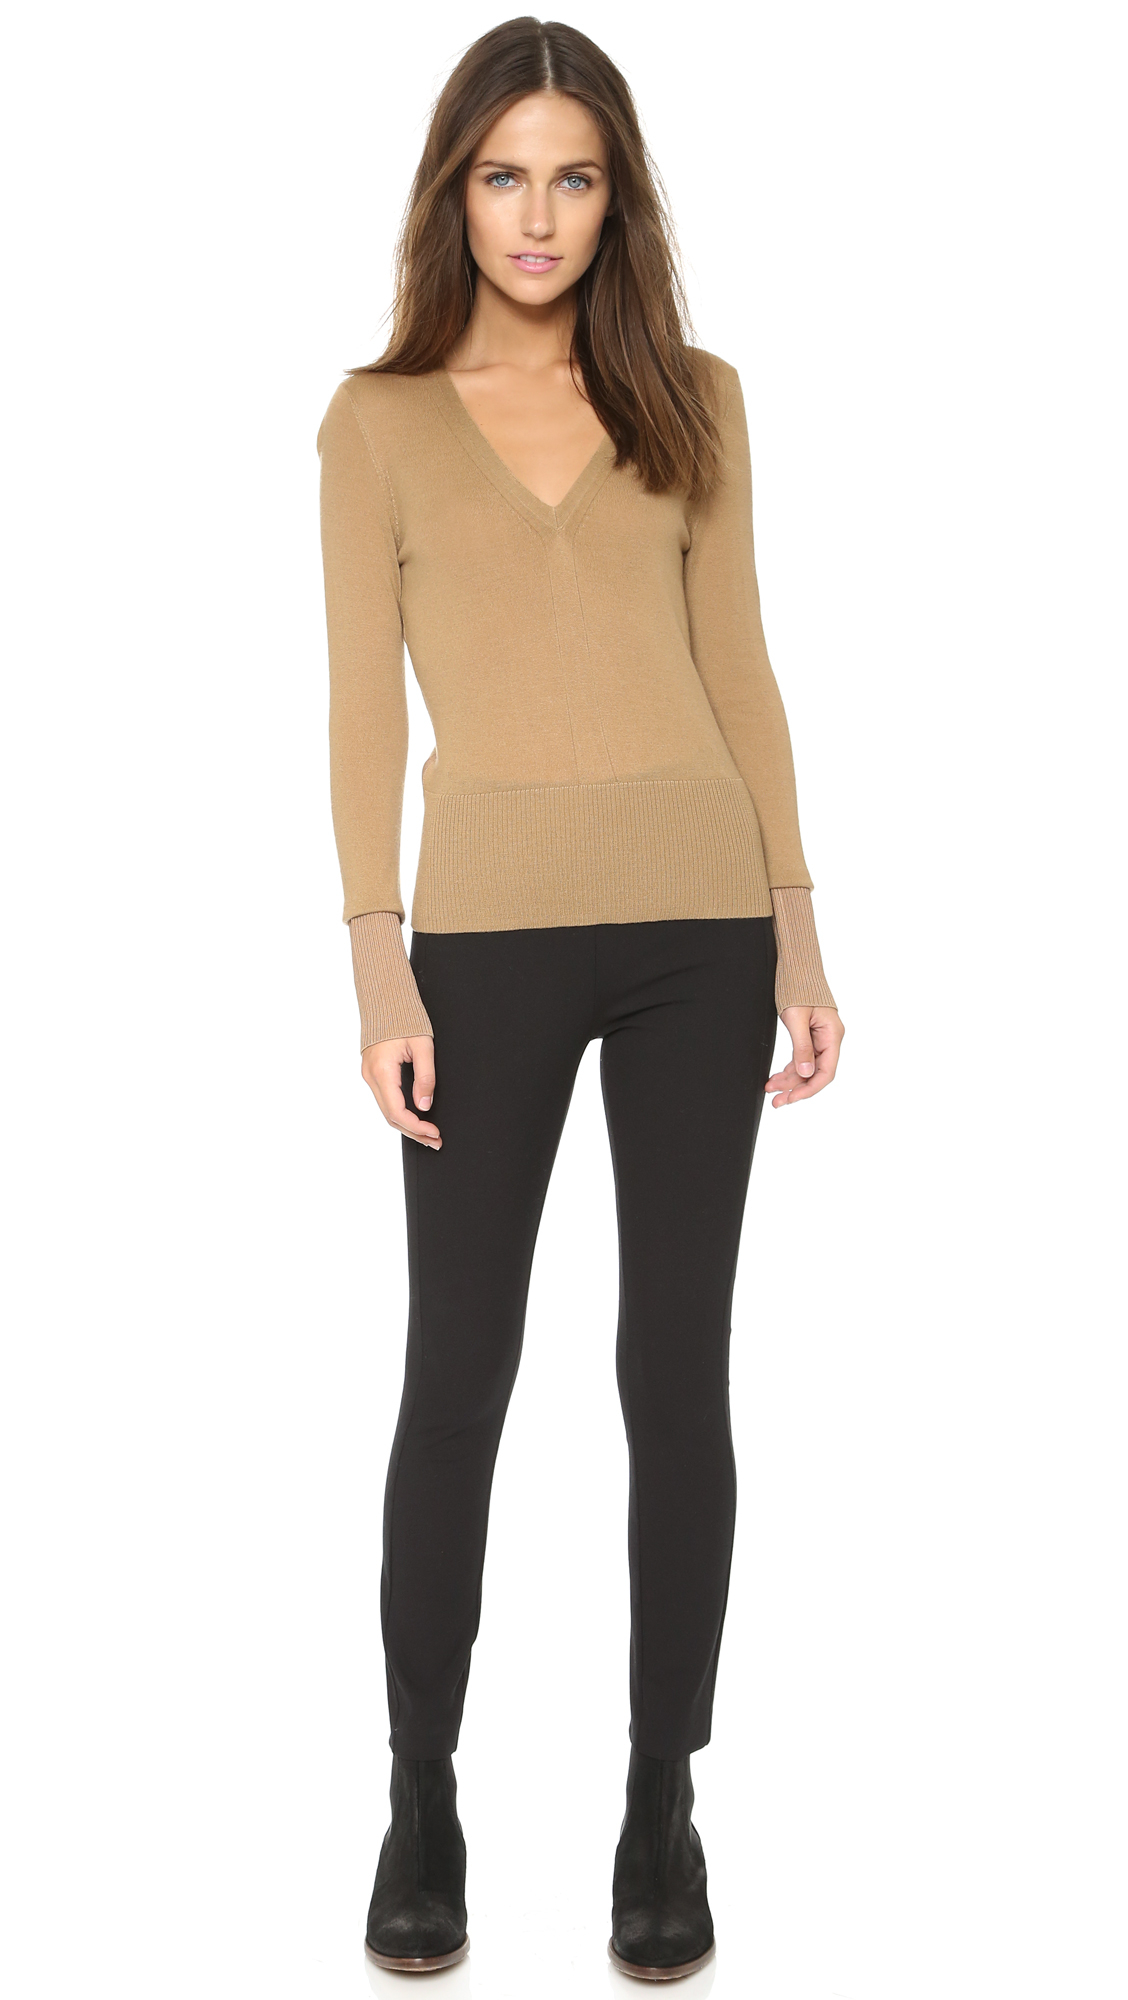 Rag & bone Jessica V Neck Sweater - Tan in Brown | Lyst